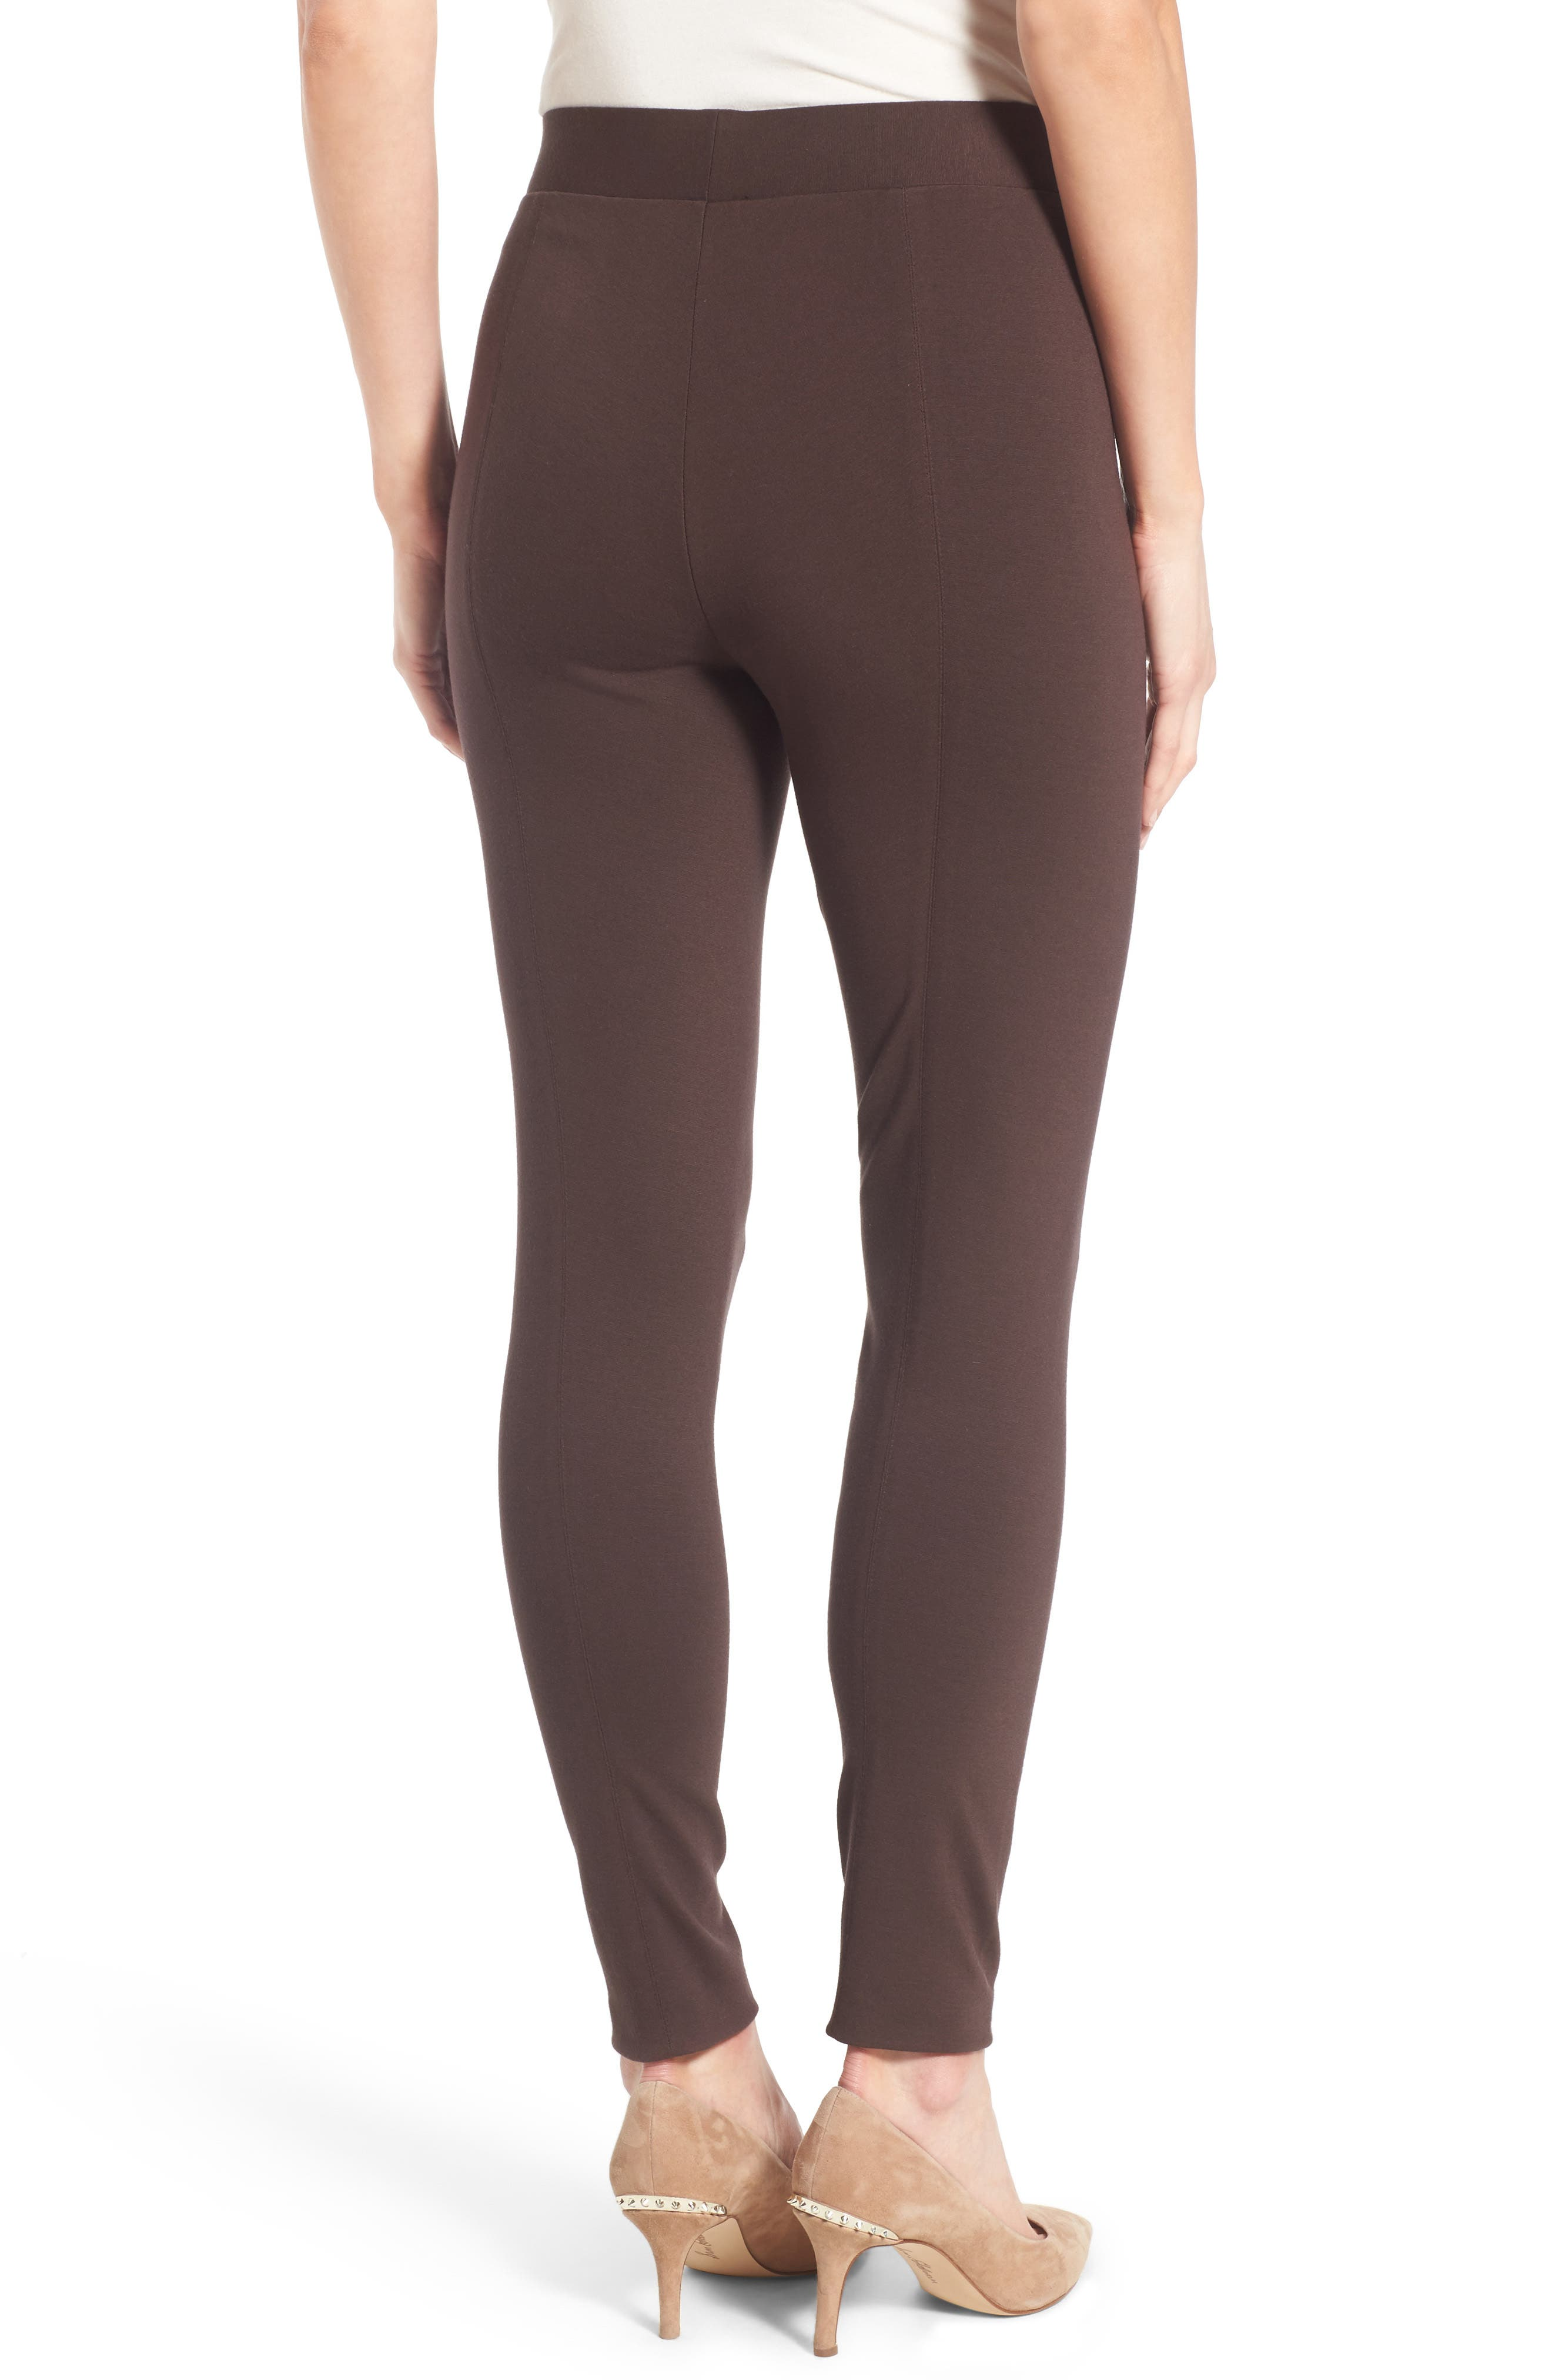 Two by Vince Camuto Seamed Back Leggings,                             Alternate thumbnail 2, color,                             ESPRESSO